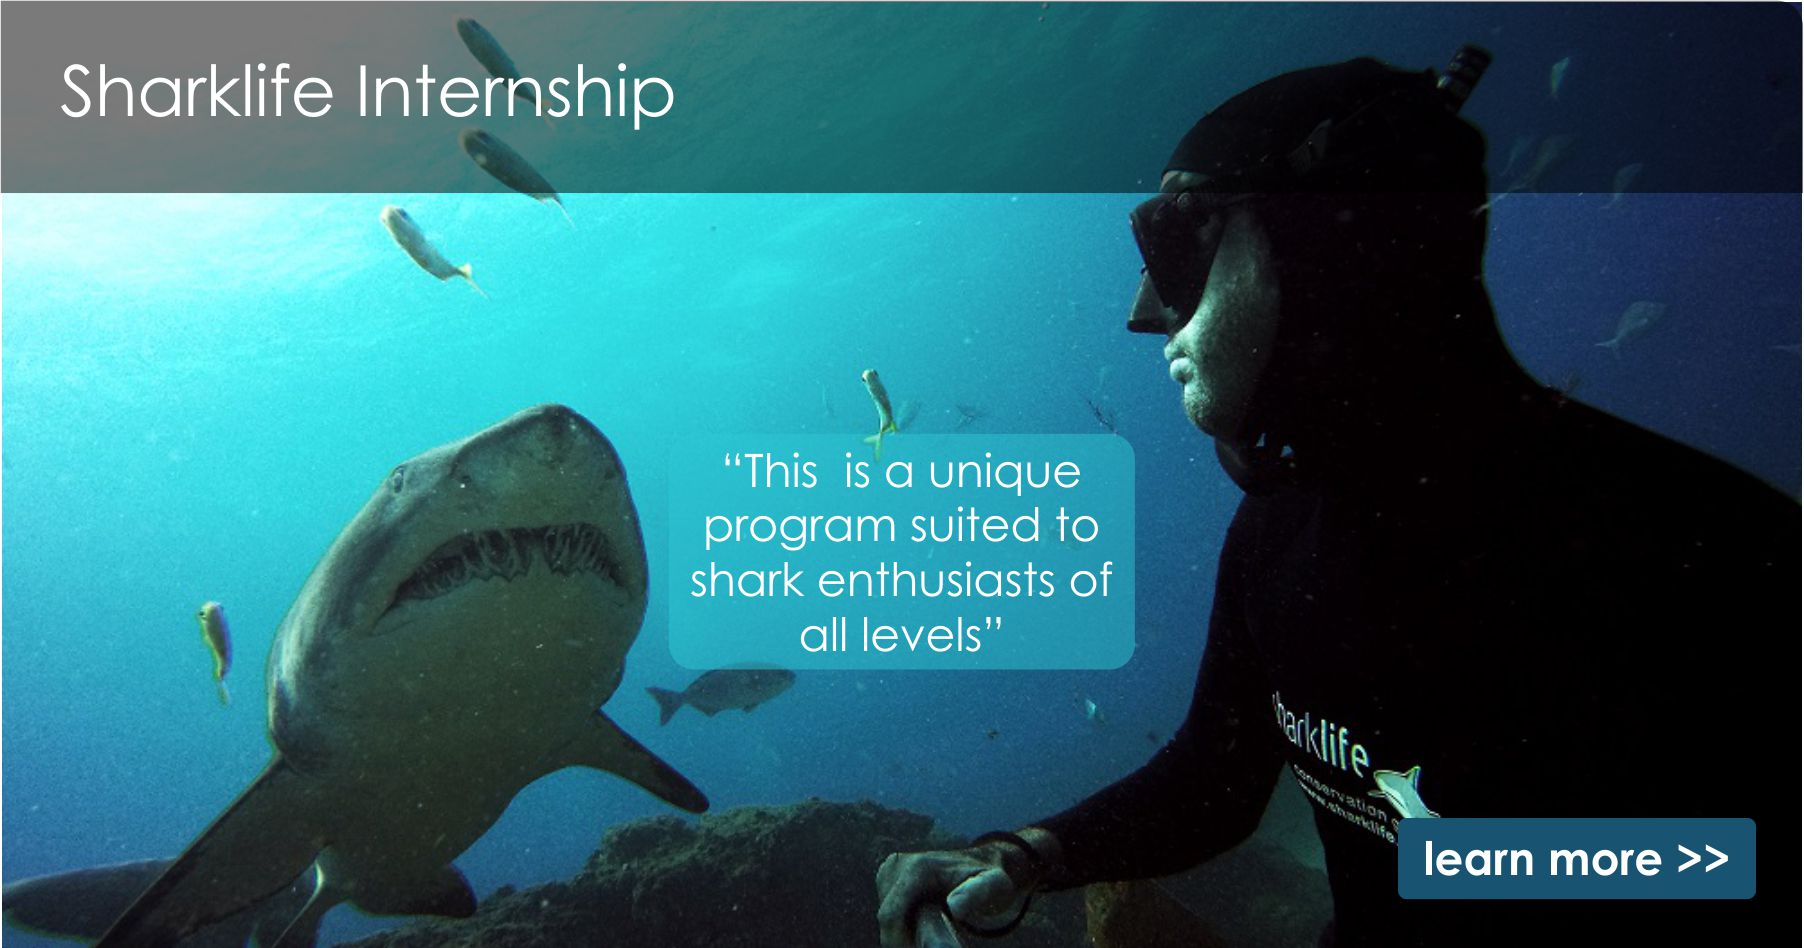 Sharklife intership2